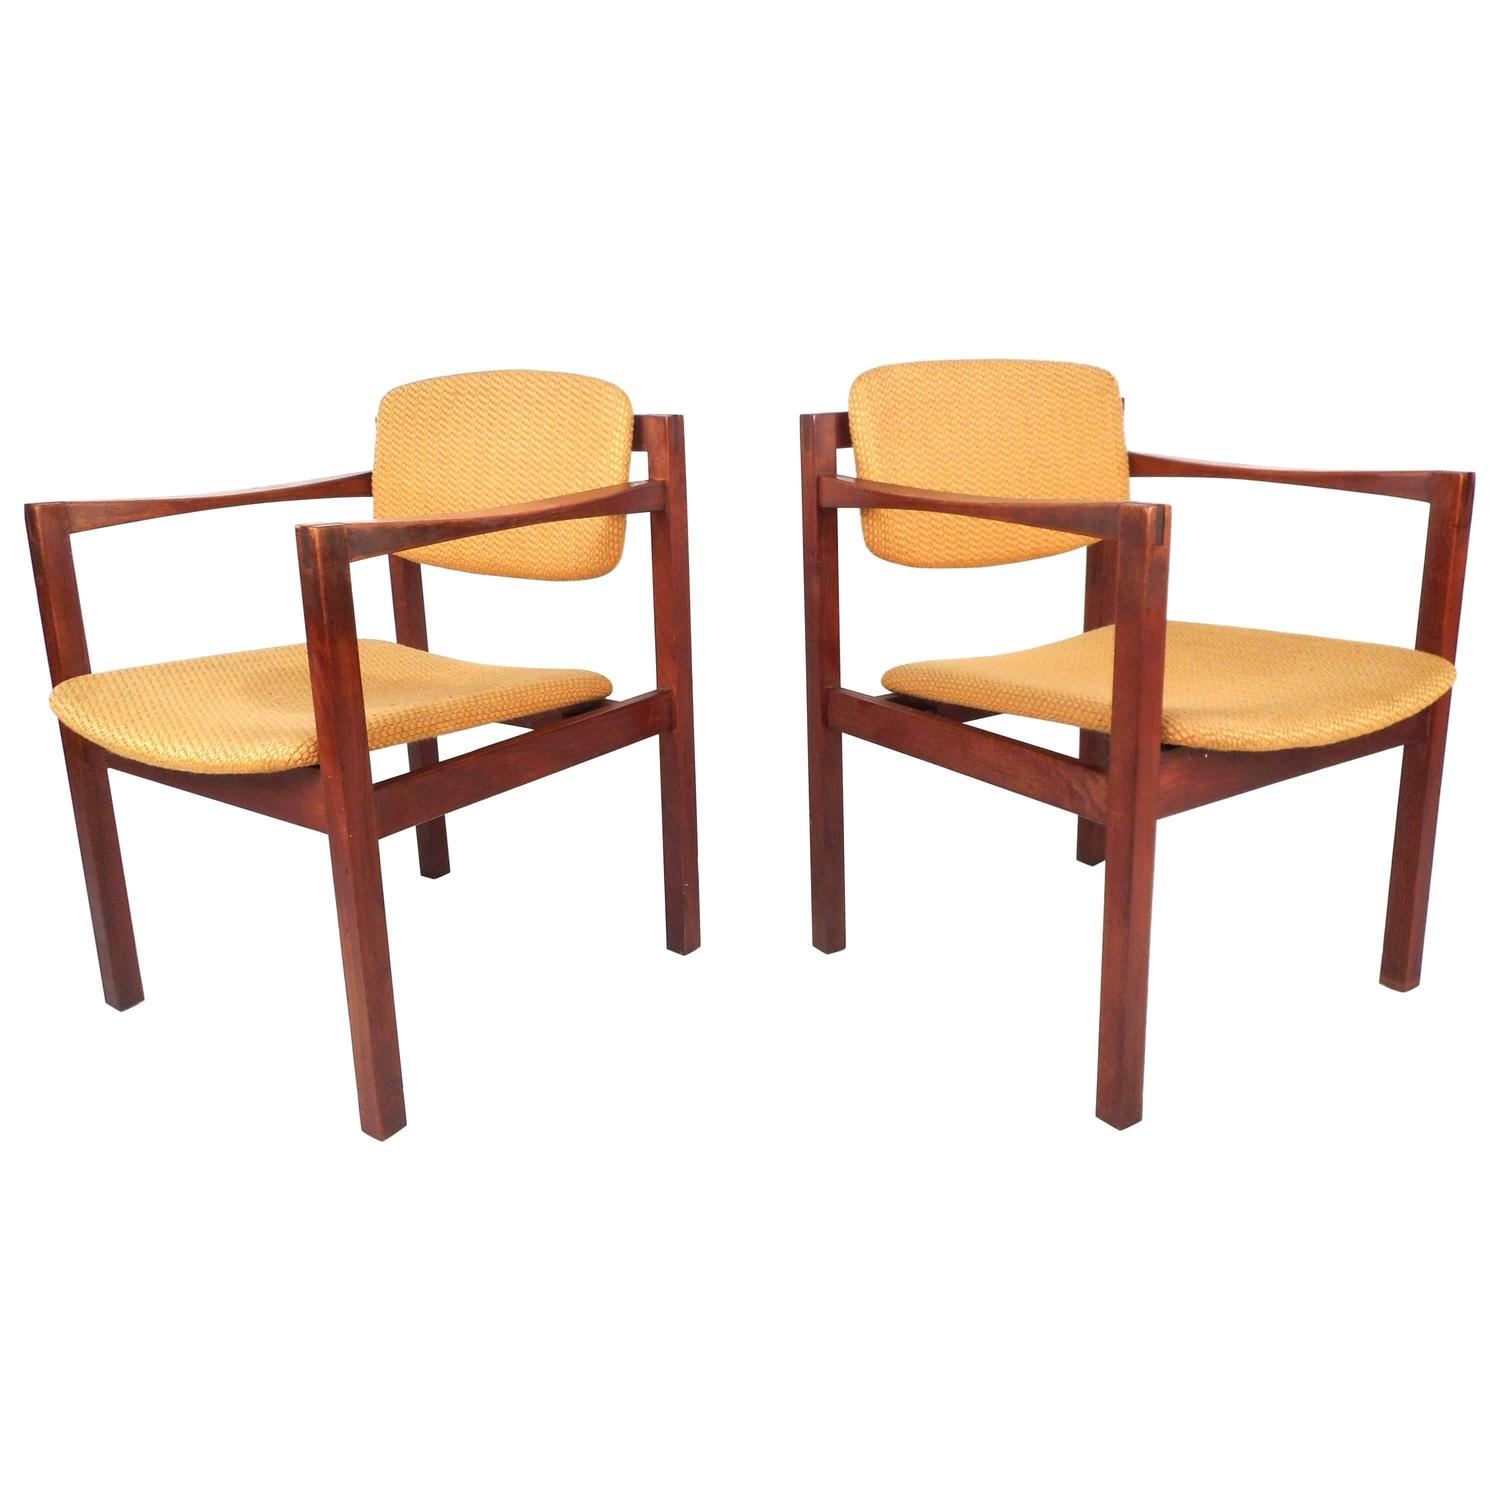 Pair Of Mid Century Modern Teak Arm Dining Chairs For Sale